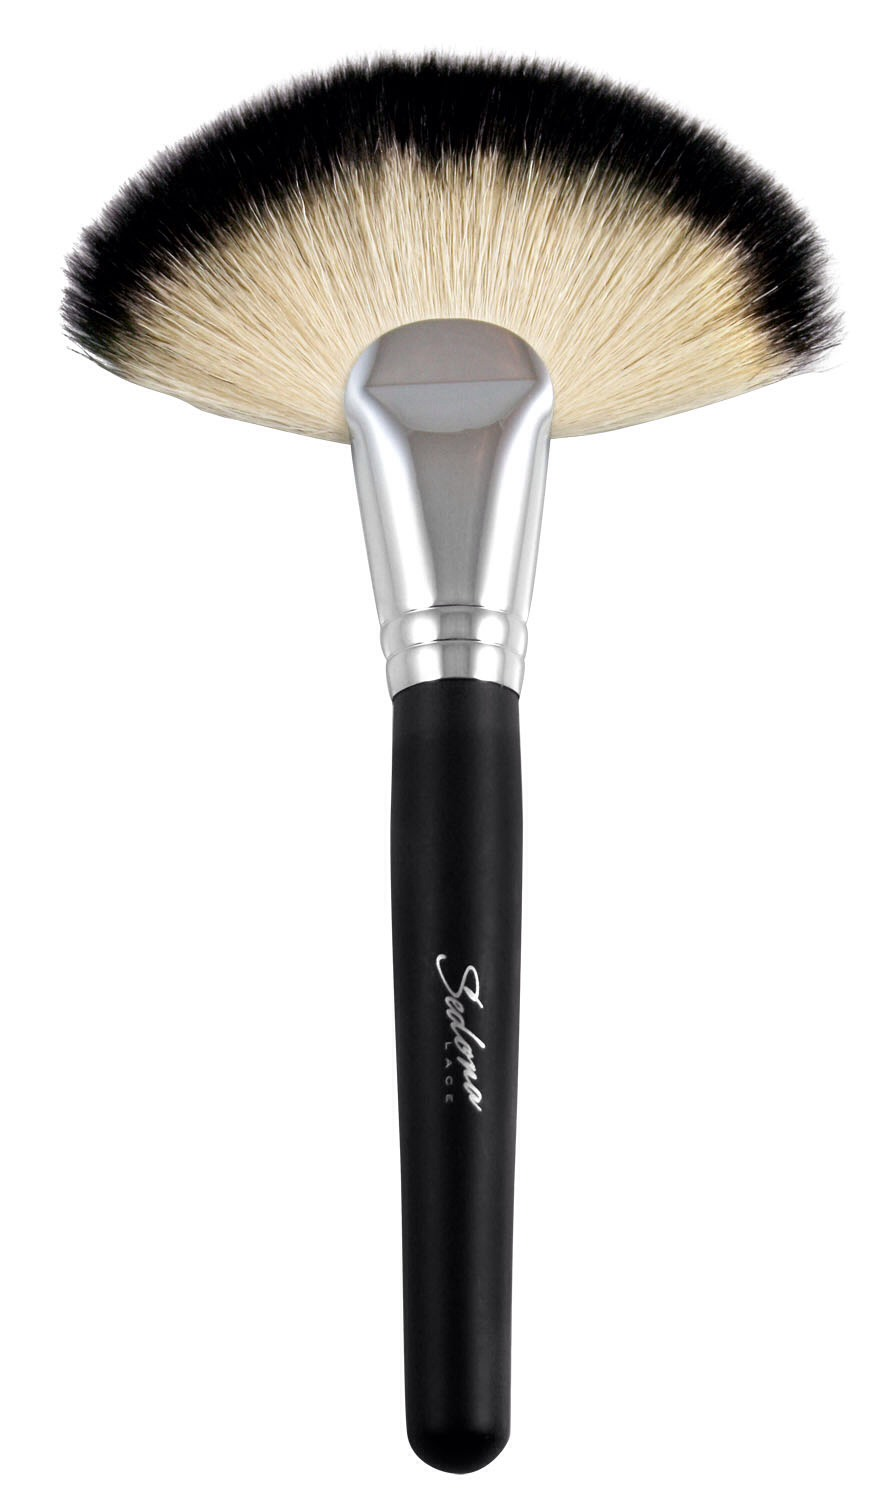 Most Overlooked (but Necessary) Makeup Brush